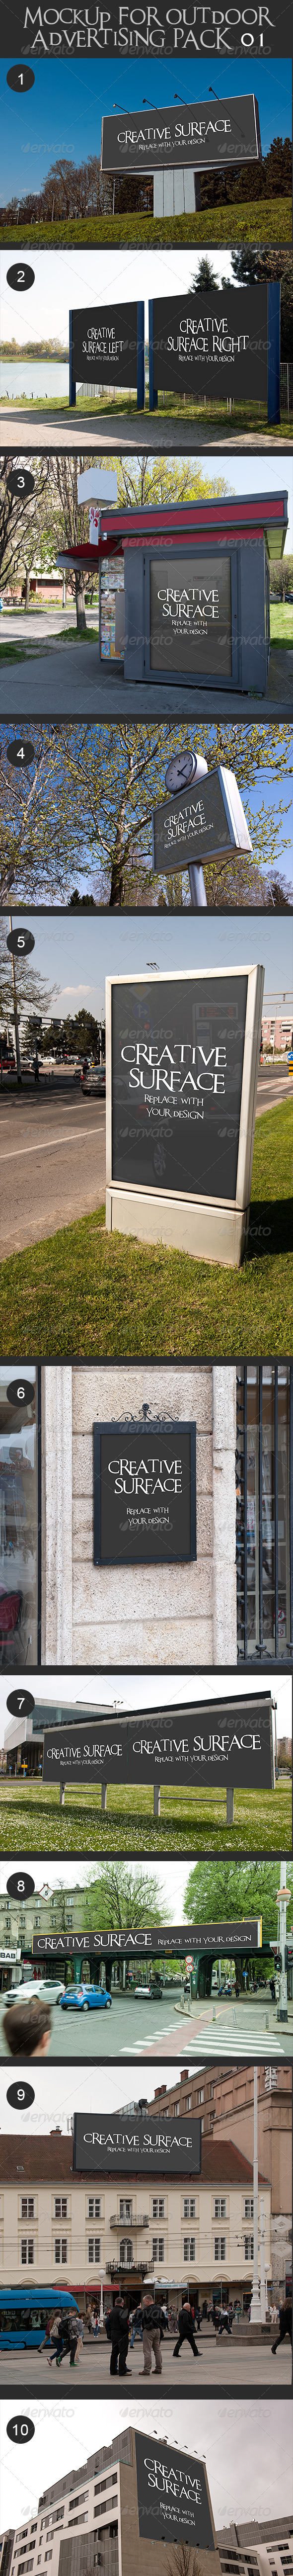 GraphicRiver 10 Mock Up s for Outdoor Advertising 7395610